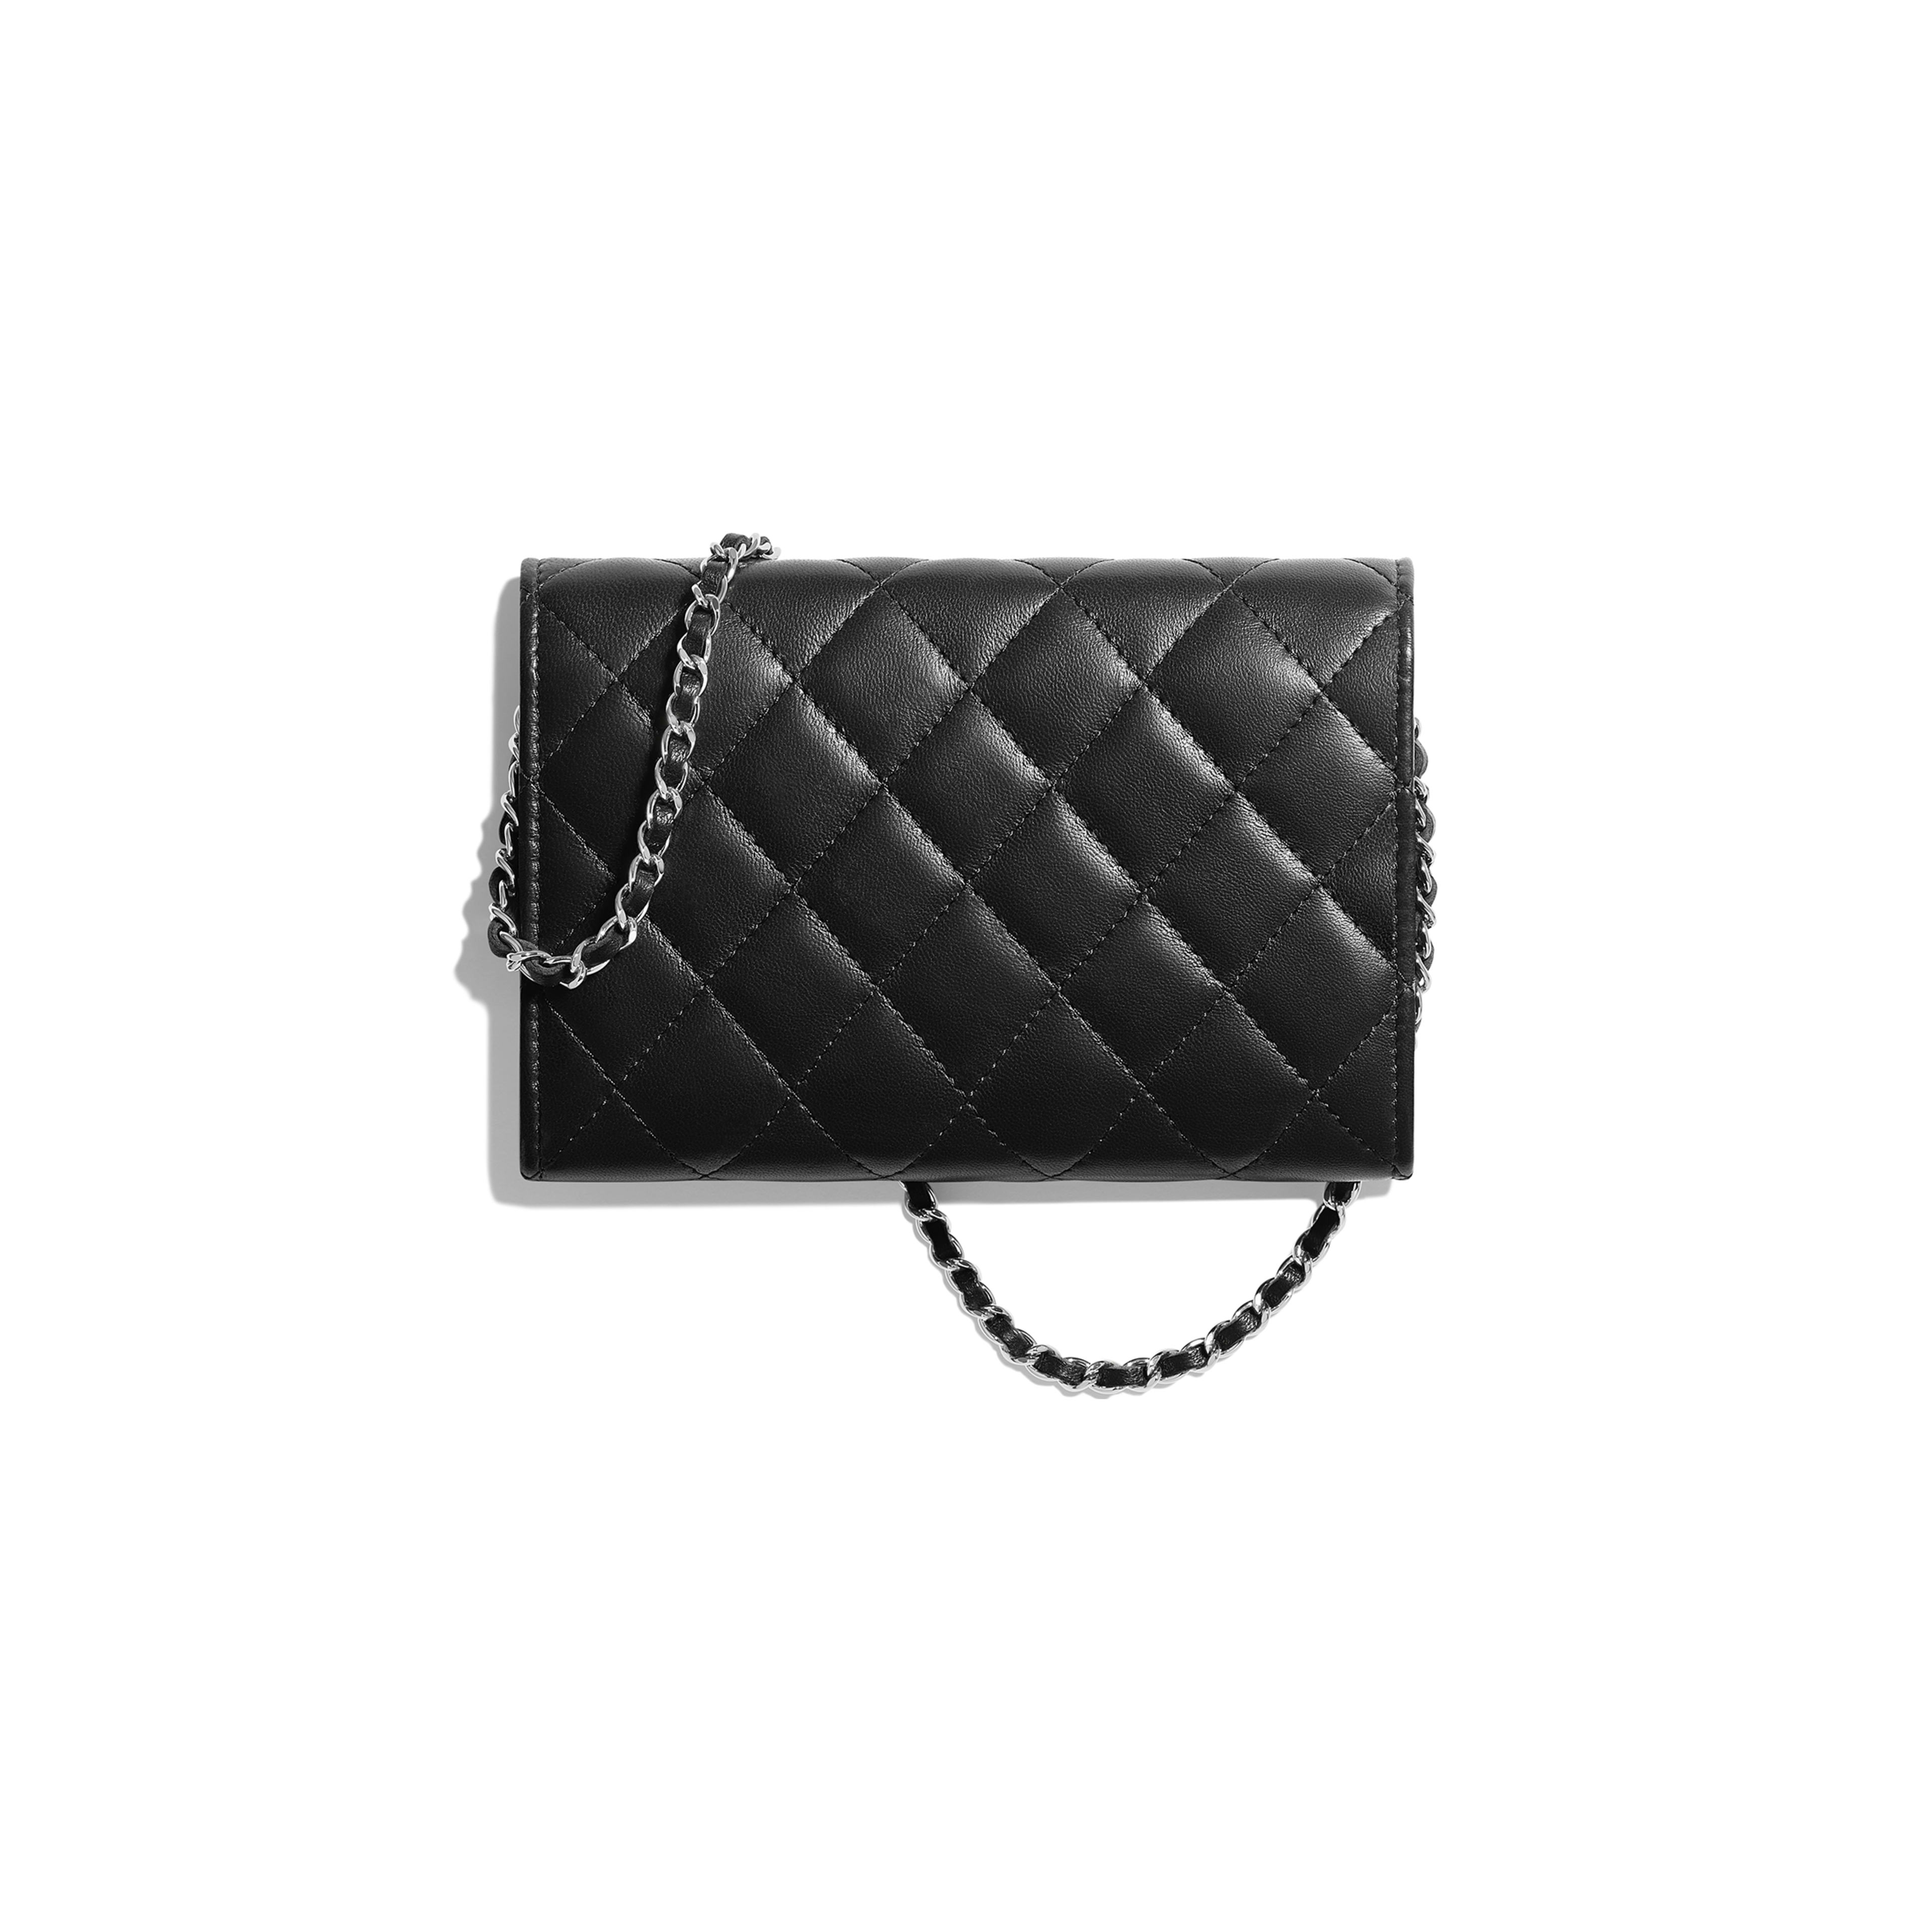 Classic Clutch With Chain - Black - Lambskin - Alternative view - see full sized version